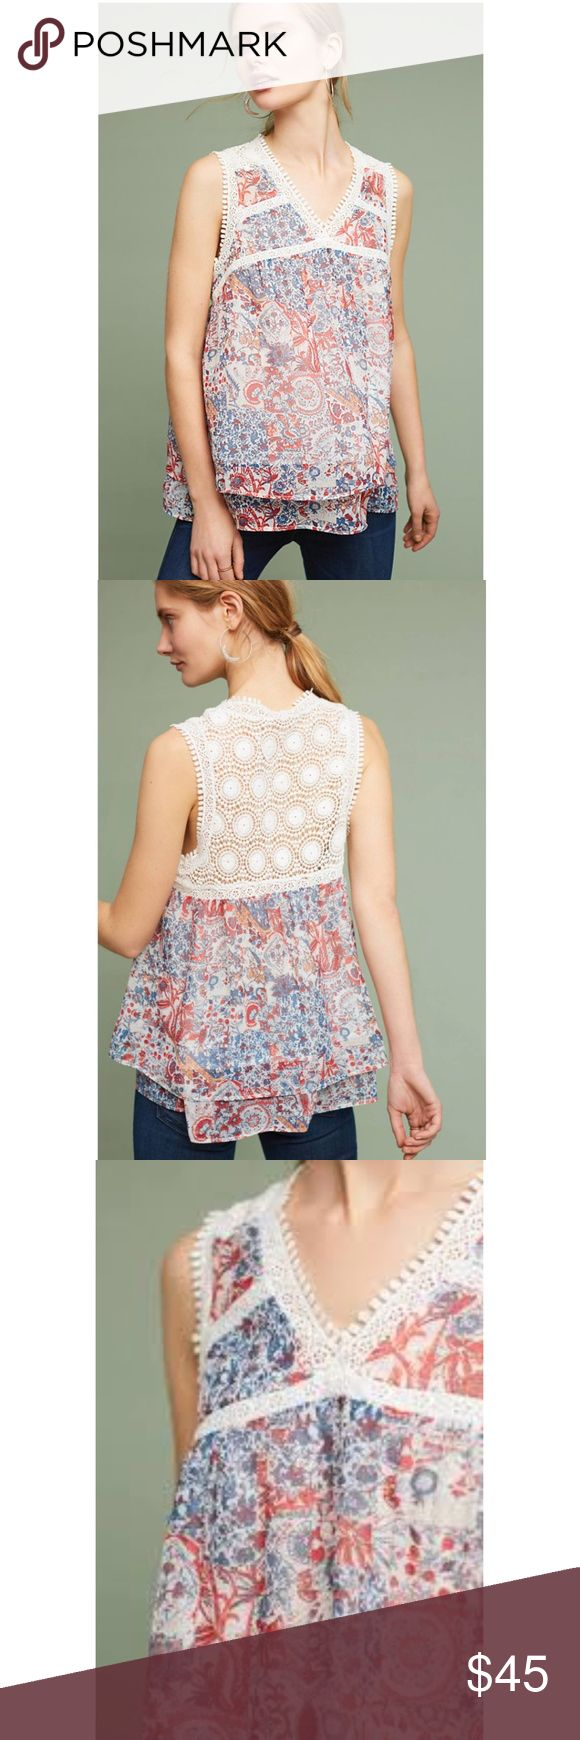 NWT ANTHROPOLOGIE Maeve Santana Lace-Trimmed Top Brand new with tags NWT ANTHROPOLOGIE Maeve Santana Lace-Trimmed Top. The name Maeve references a purple flower, a Greek goddess and a famously beautiful Irish warrior queen. This Anthropologie Maeve top is both feminine and playful, a representation of beauty and strength at once. Size Large/L Color Red Motif Polyester Lace trim detailing Pullover styling Hand wash Photo credit to Anthropologie Anthropologie Tops